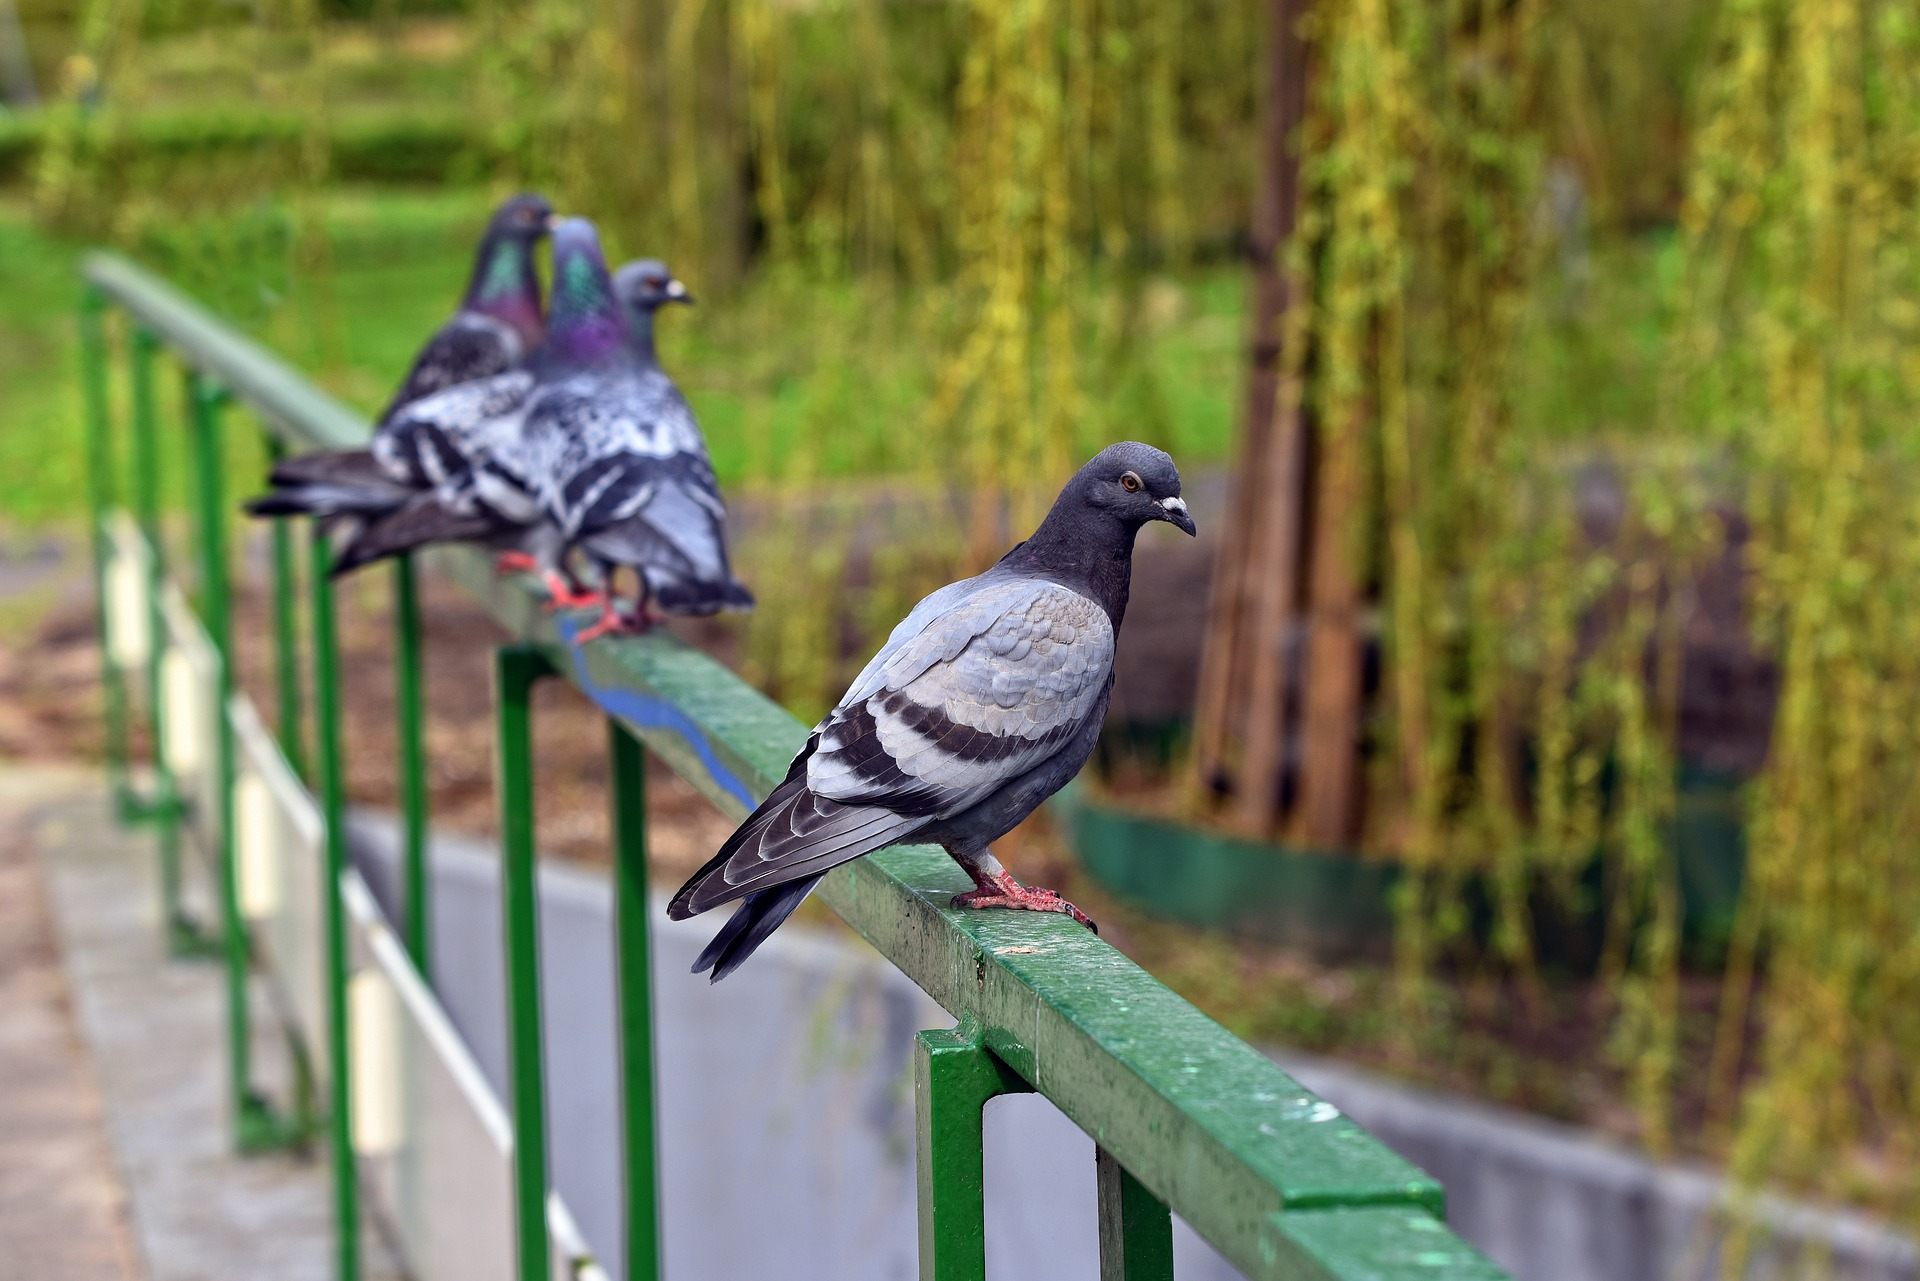 pigeons on railing- 6 effective ways to get rid of pigeons